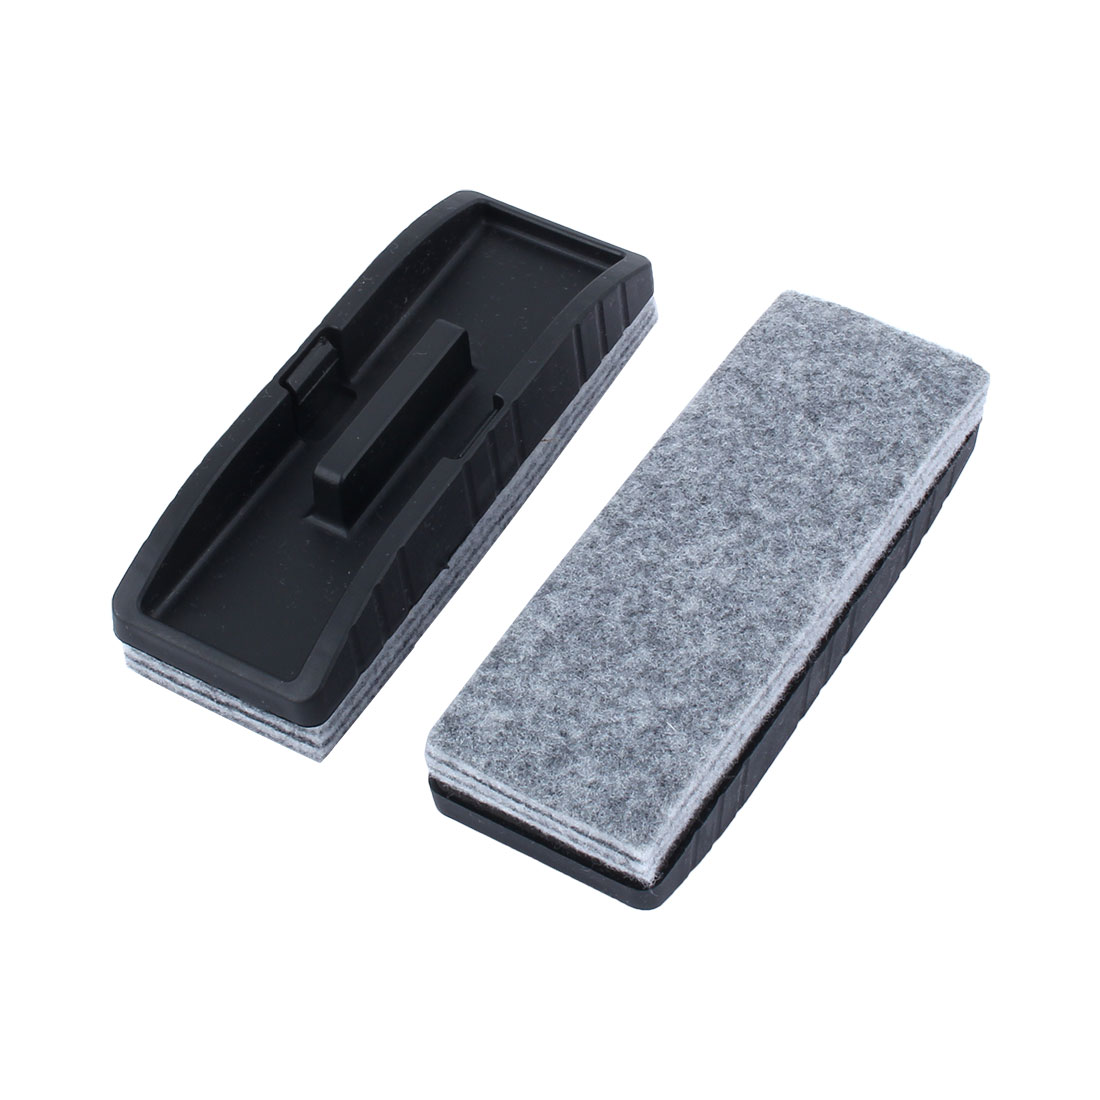 School Teaching Plastic Rectangle Blackboard Eraser Brush Stain Removal Black 2pcs